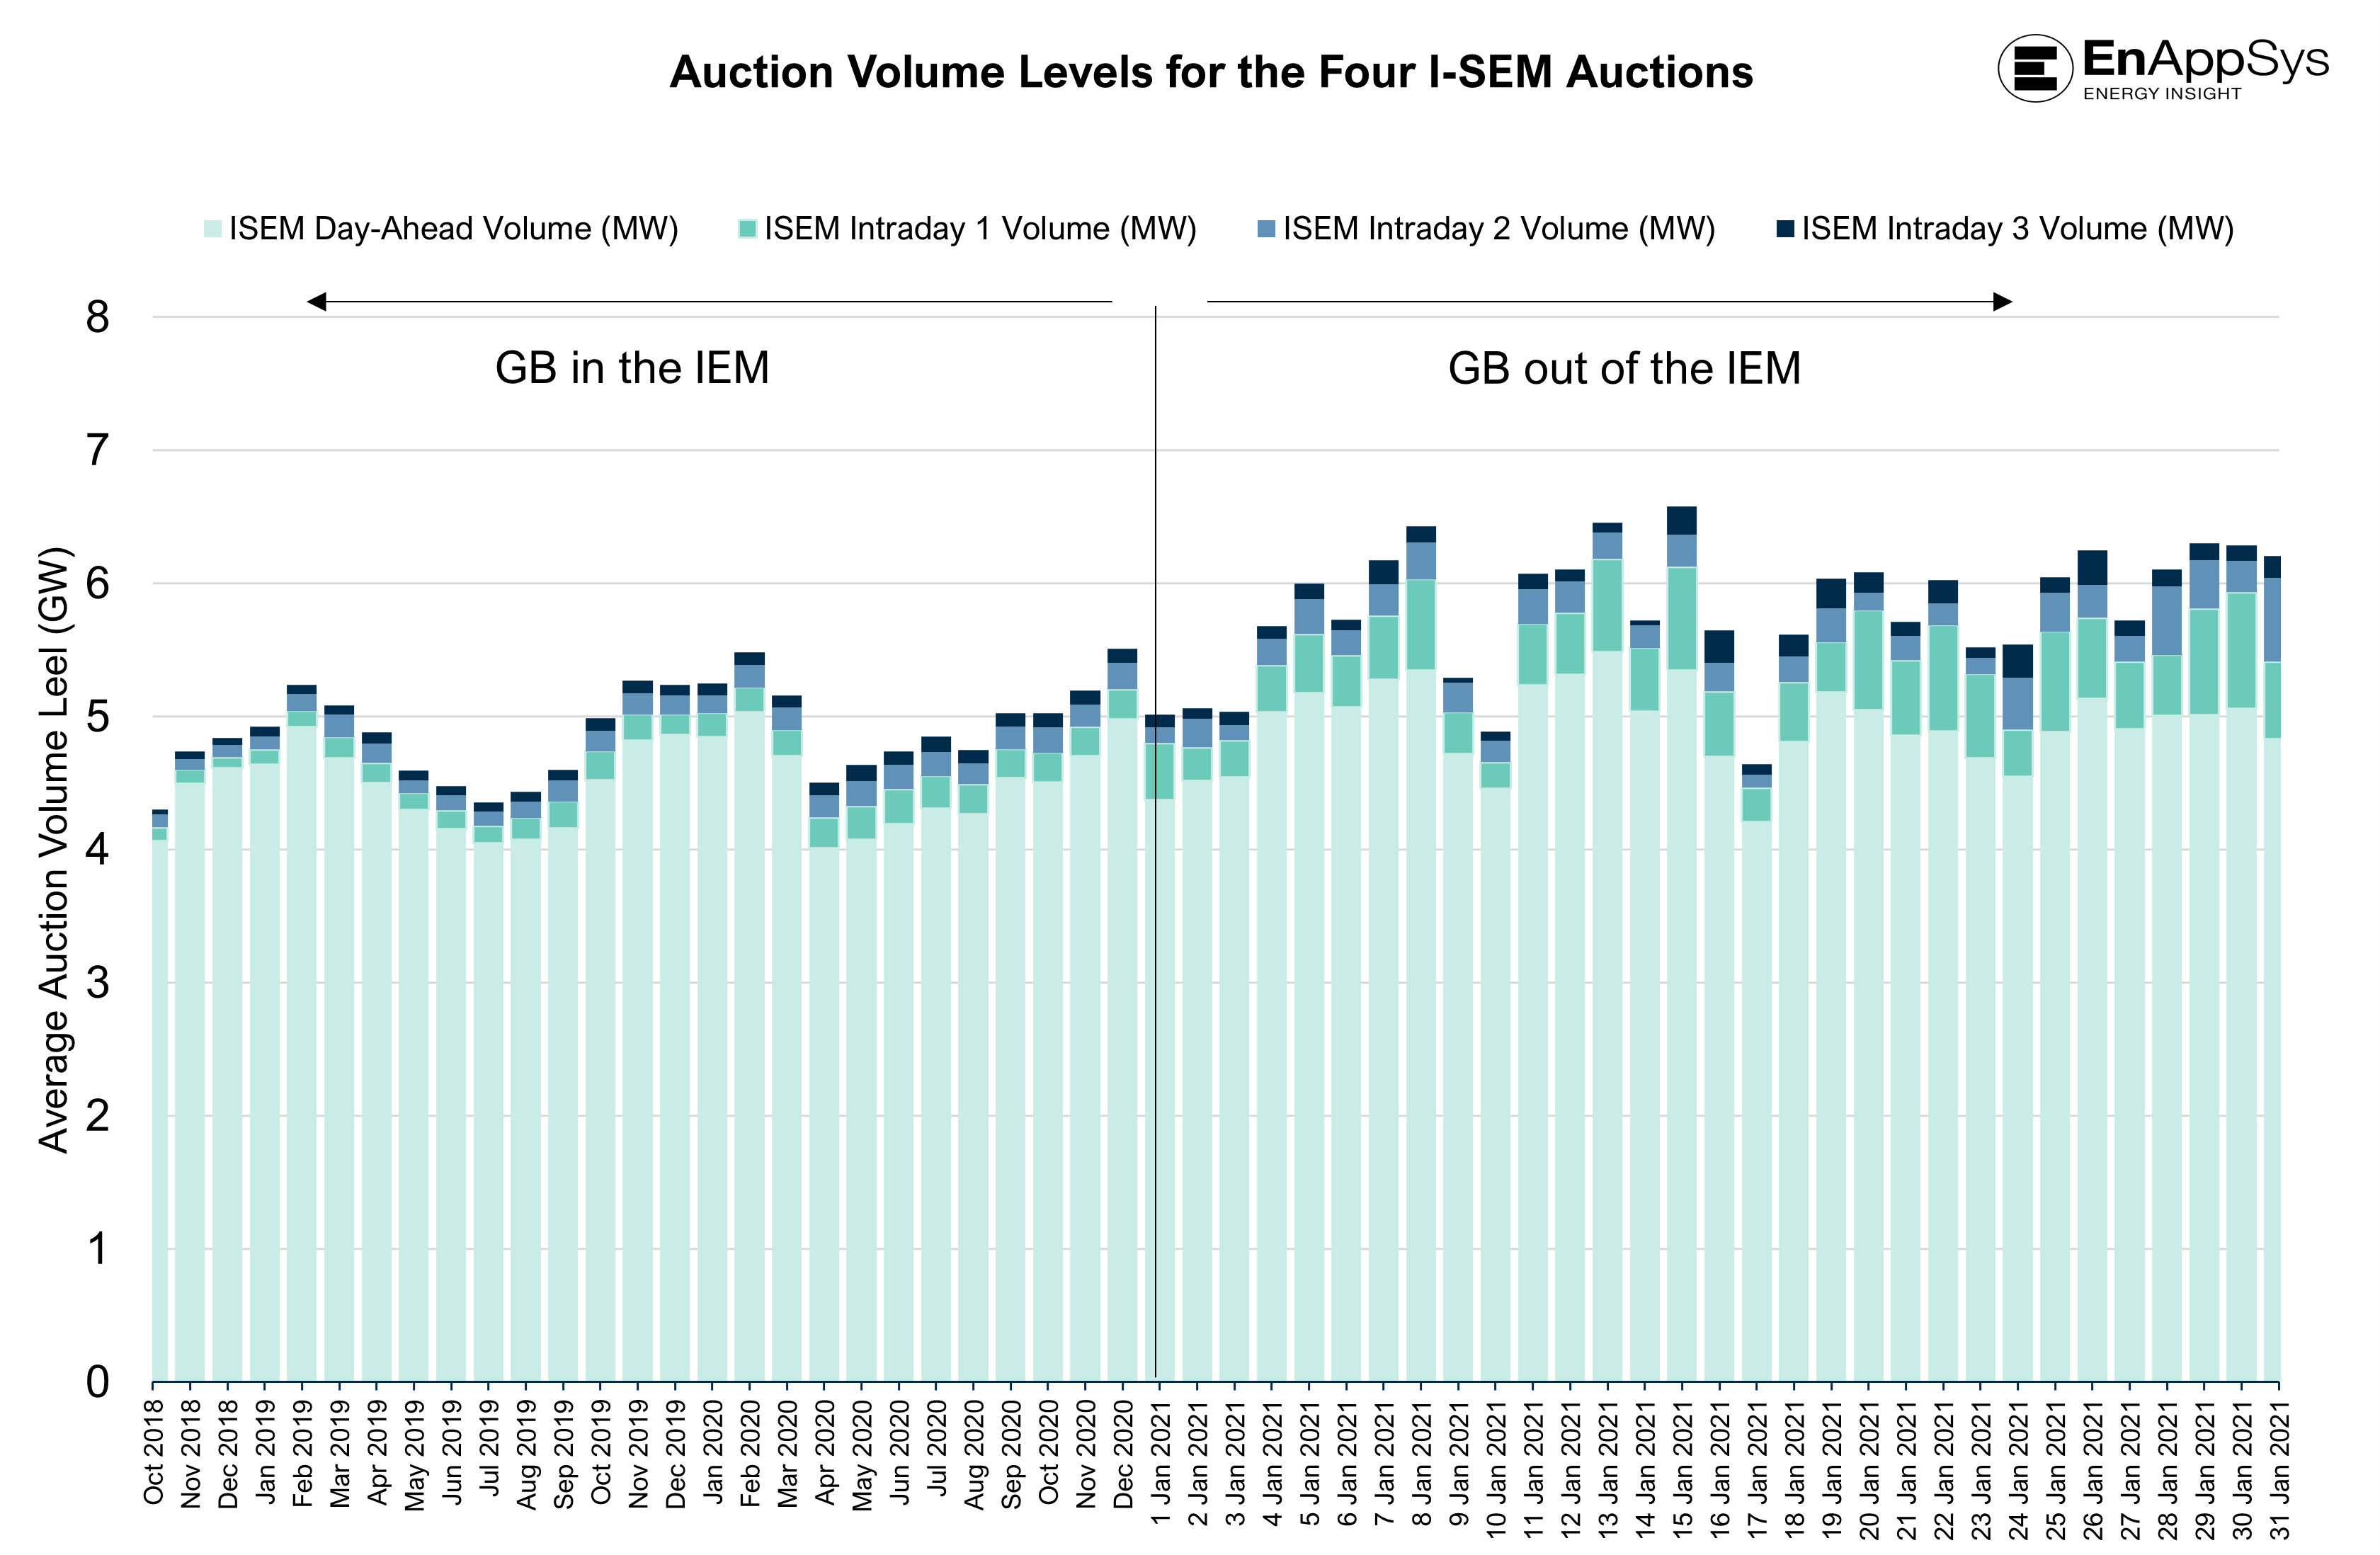 Figure 2: Auction Volume Levels for the Four I-SEM Auctions